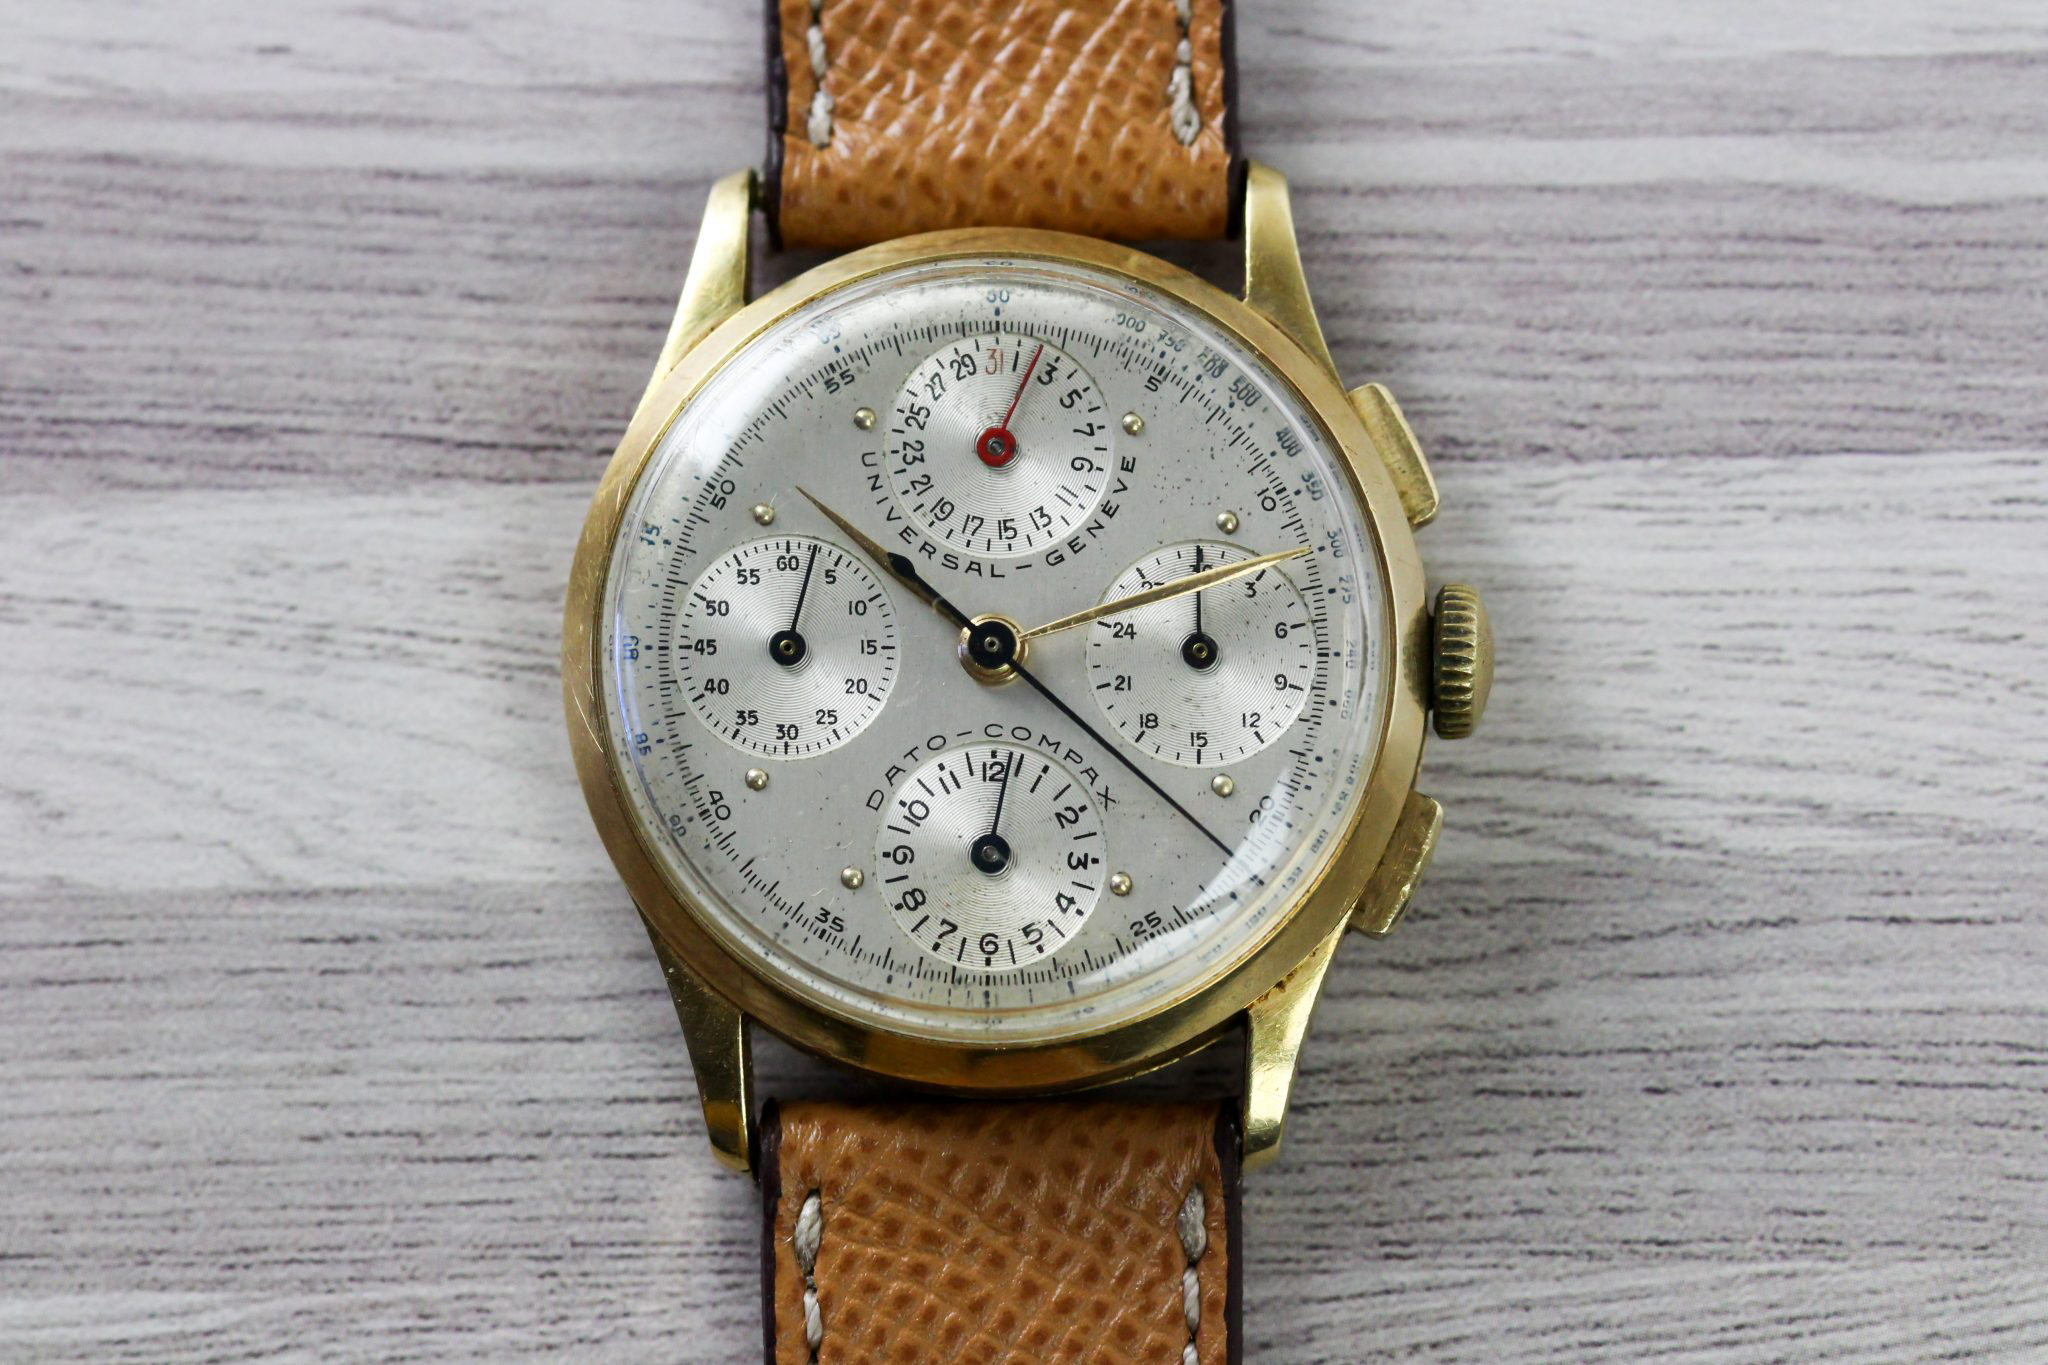 A gold Dato Compax ref. 12495 with silver dial by @Mentawatches